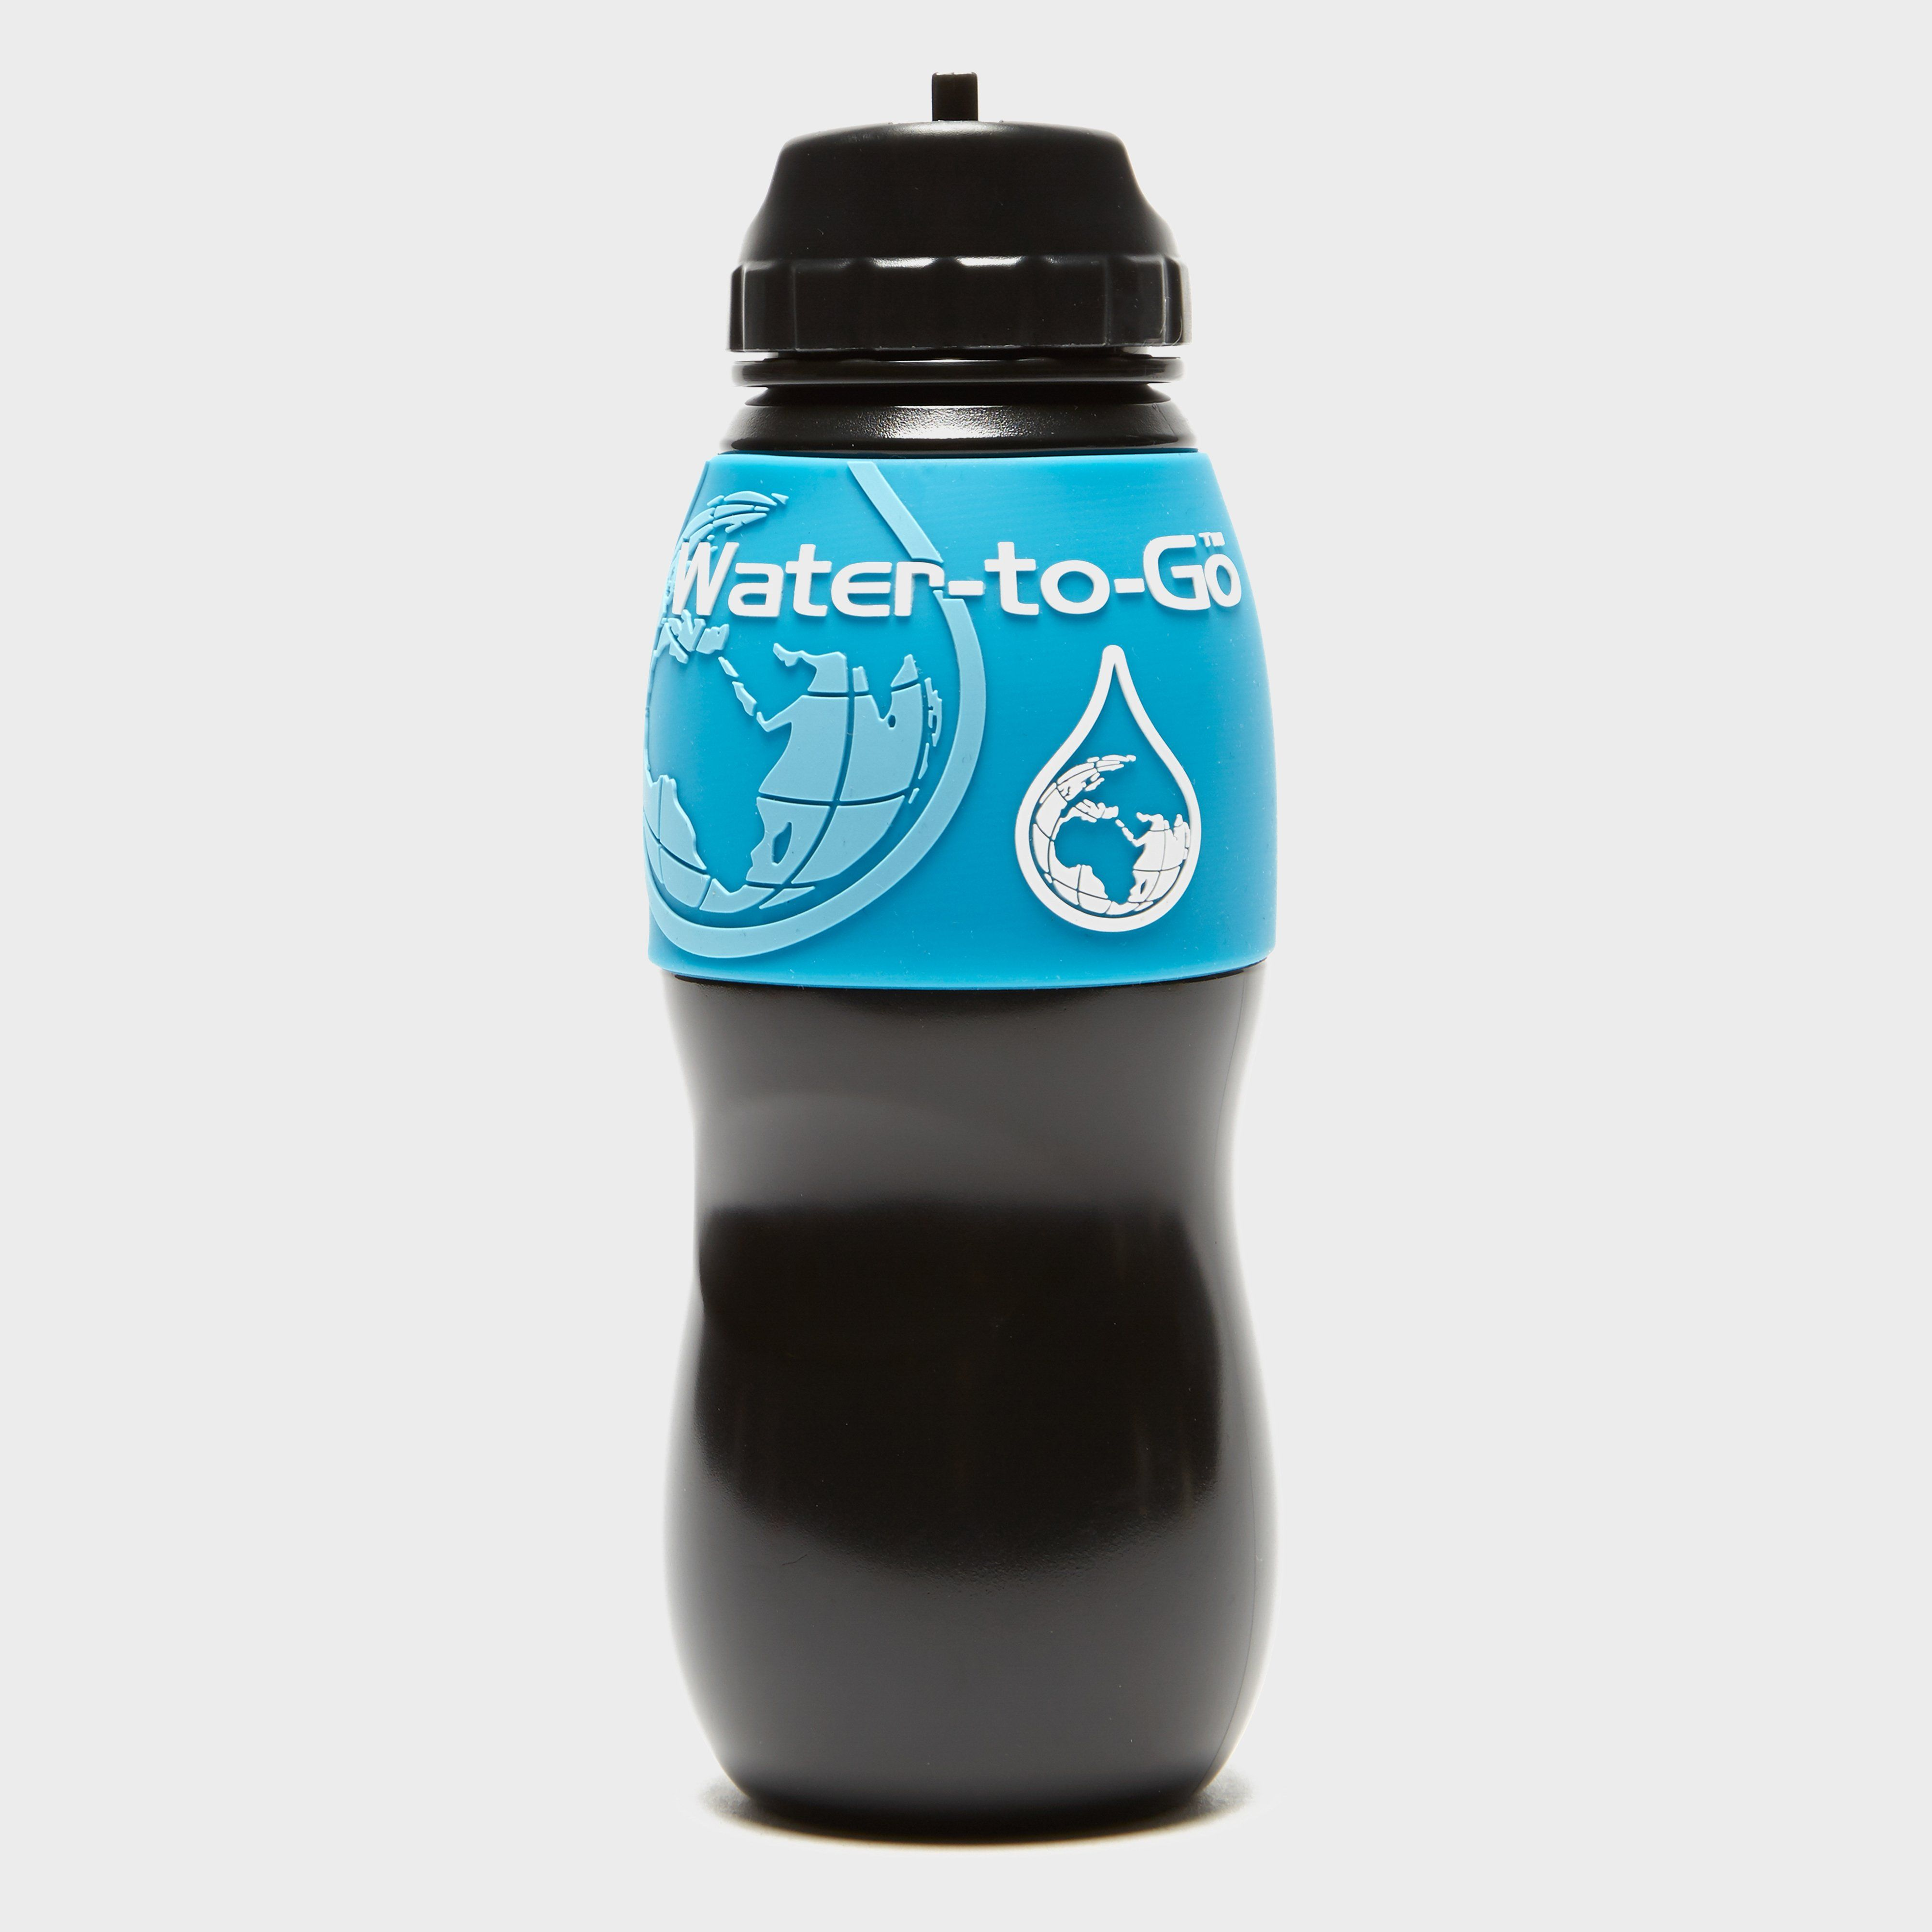 WATER-TO-GO Filter Bottle 75cl